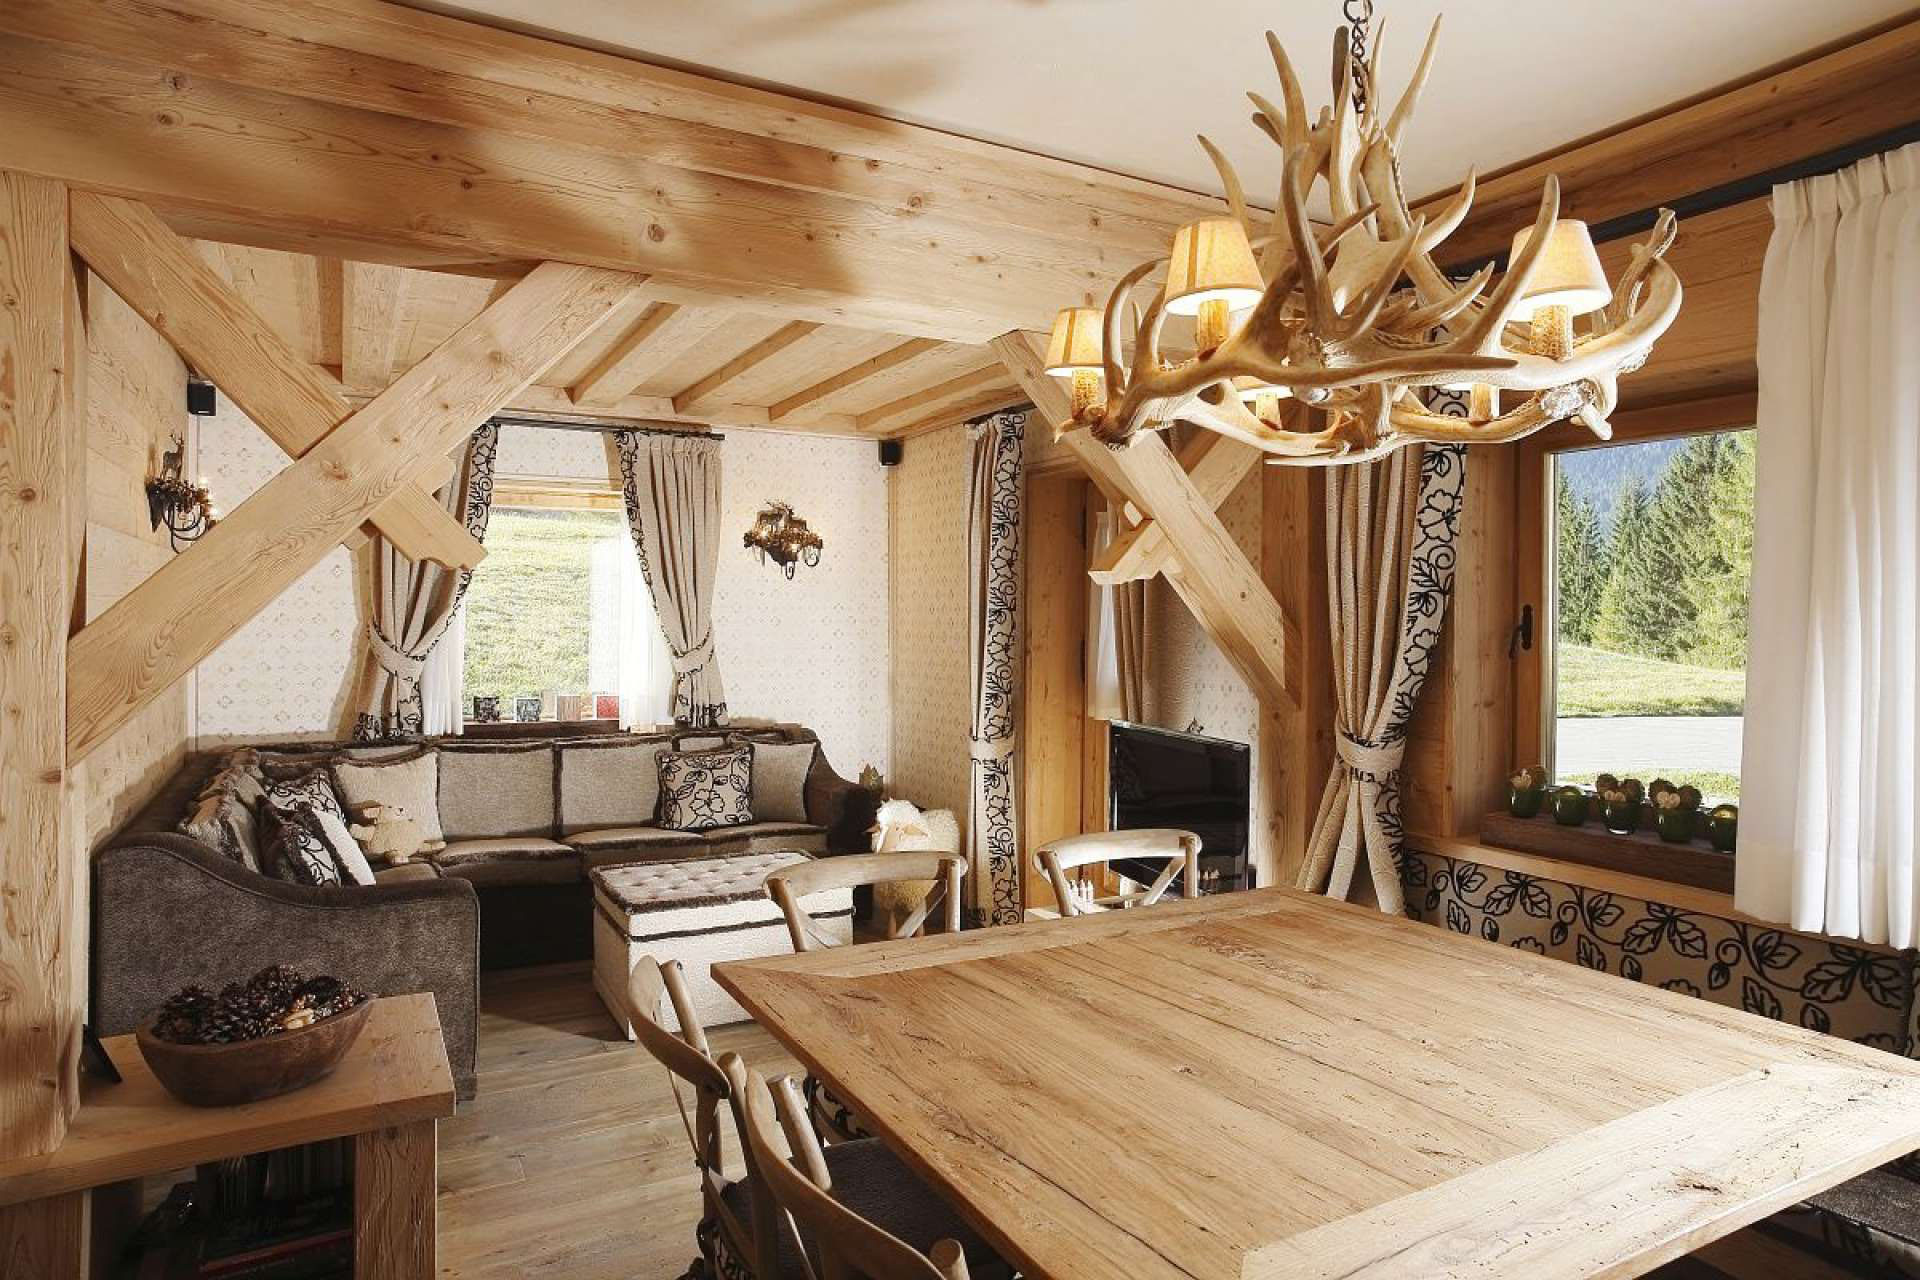 Rustic alpine apartment with natural wood elements for Rustic style interior